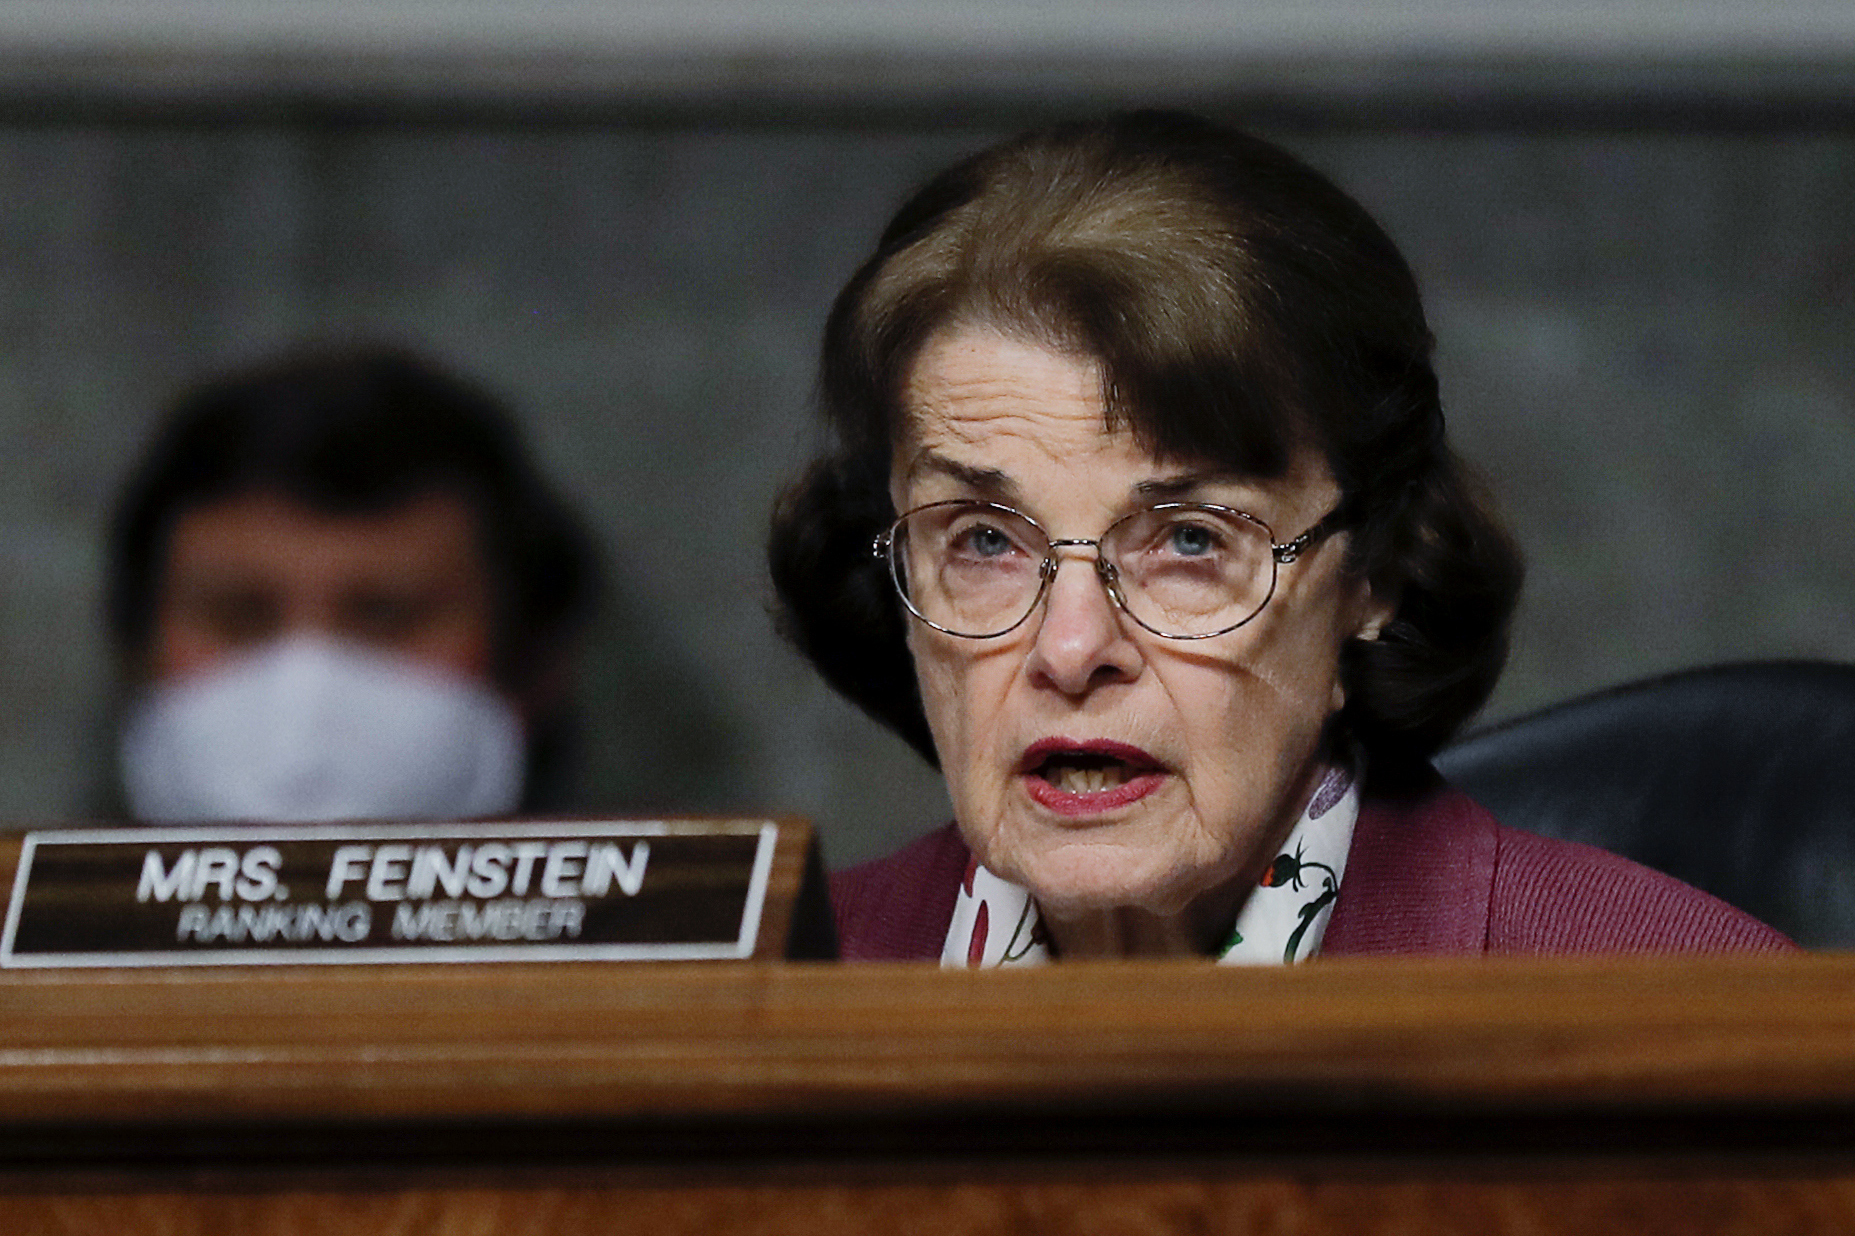 Sen. Dianne Feinstein, D-Calif., speaks during a Senate Judiciary Committee hearing examining liability during the coronavirus disease (COVID-19) outbreak, Tuesday, May 12, 2020 on Capitol Hill in Washington. (Carlos Barria/Pool via AP)